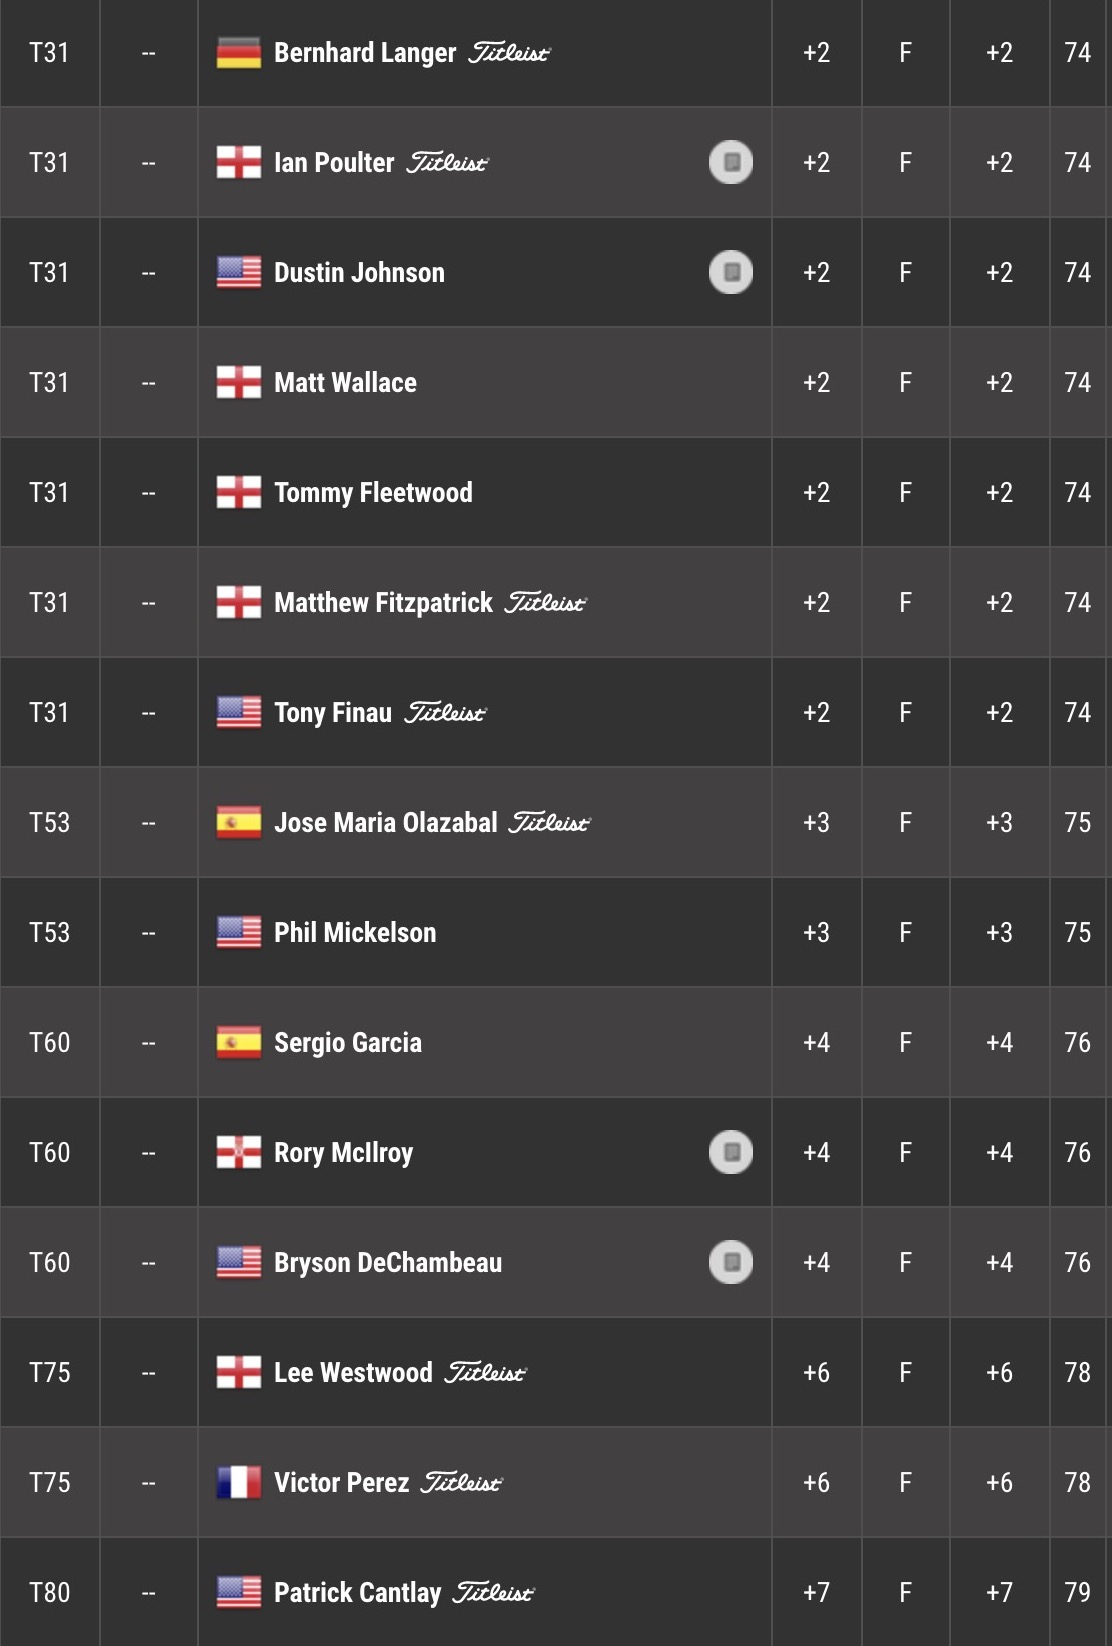 LEADERBOARD TOUR 1 MASTERS